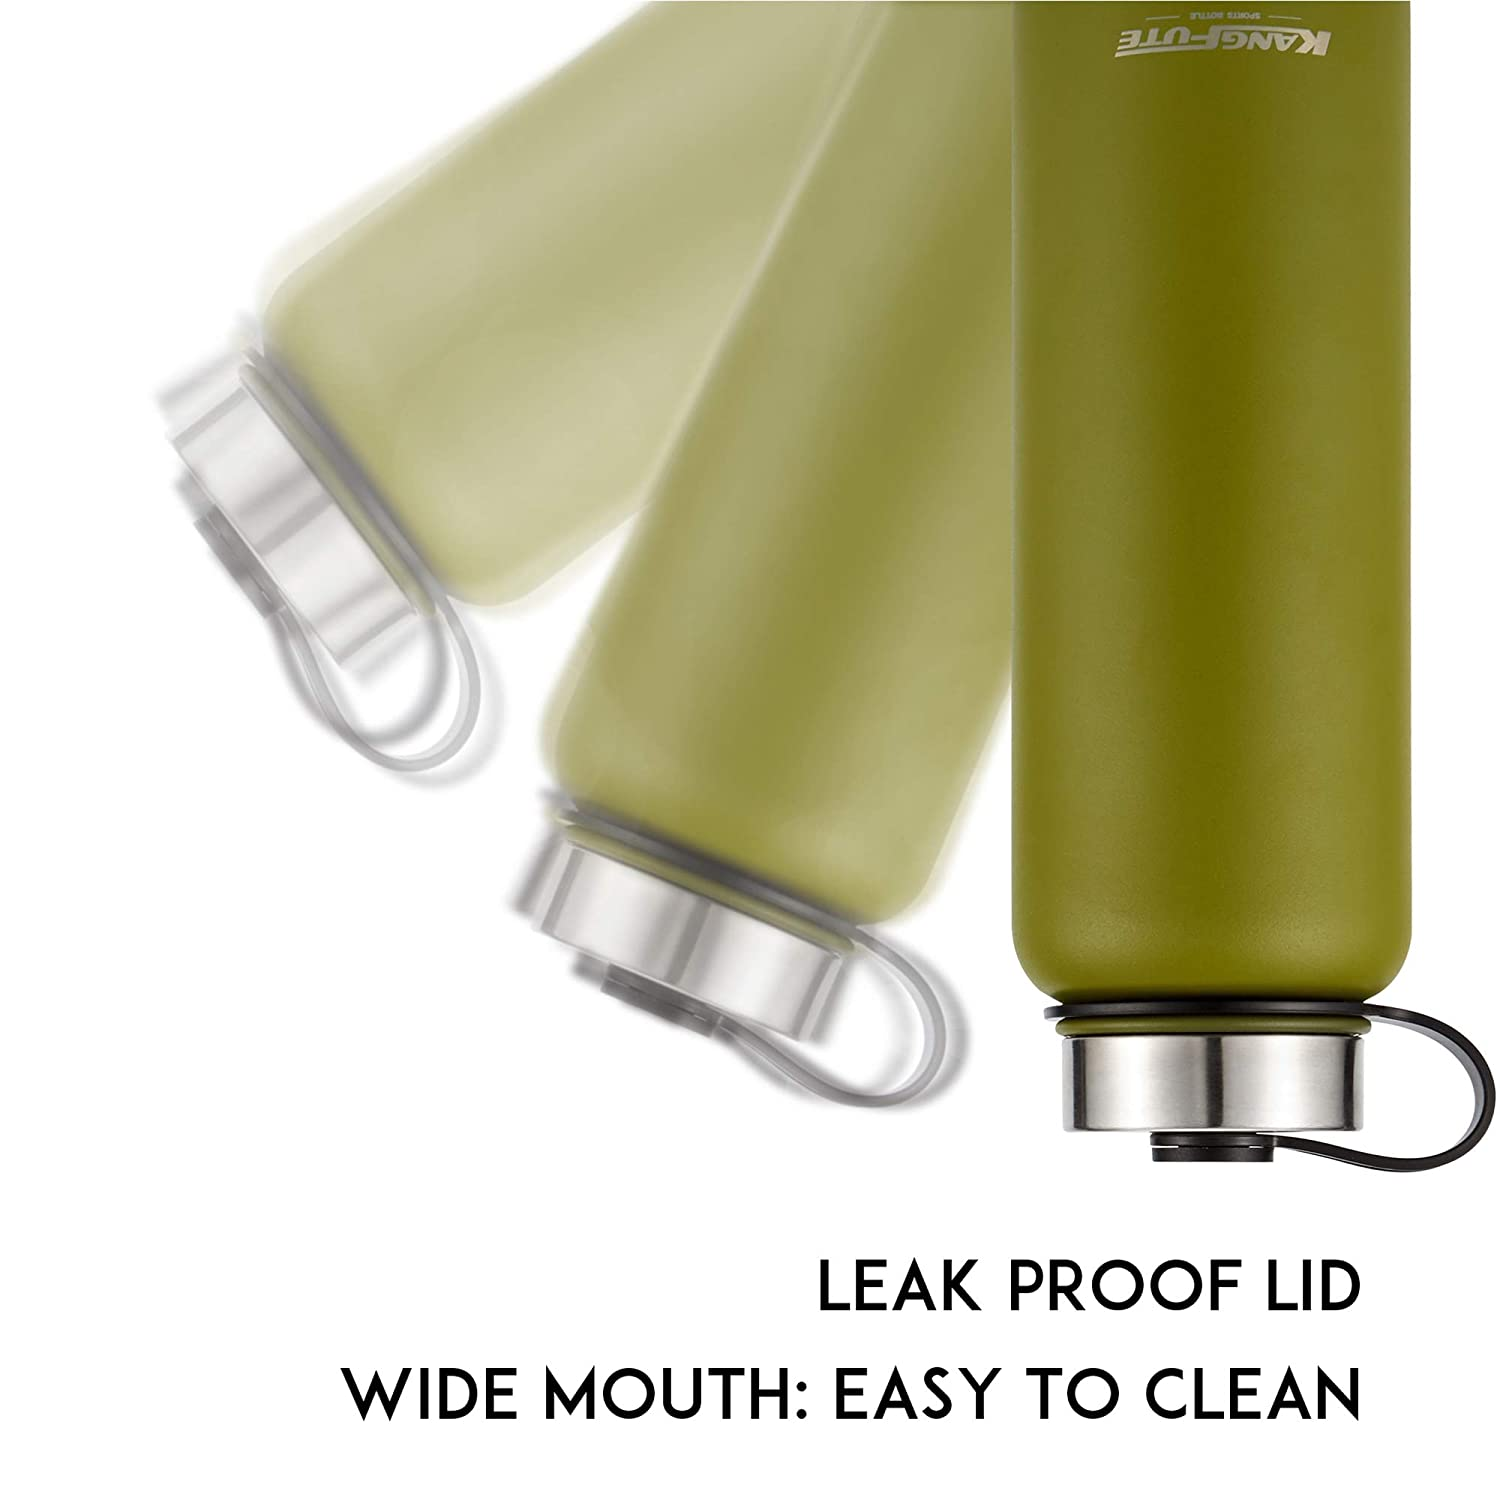 KASBIN Holistic Flask High-Capacity Double Wall Insulated Stainless Steel Water Bottle,Wide Mouth BPA Free,Anti Slip Leak Proof-3 Size,6 Color